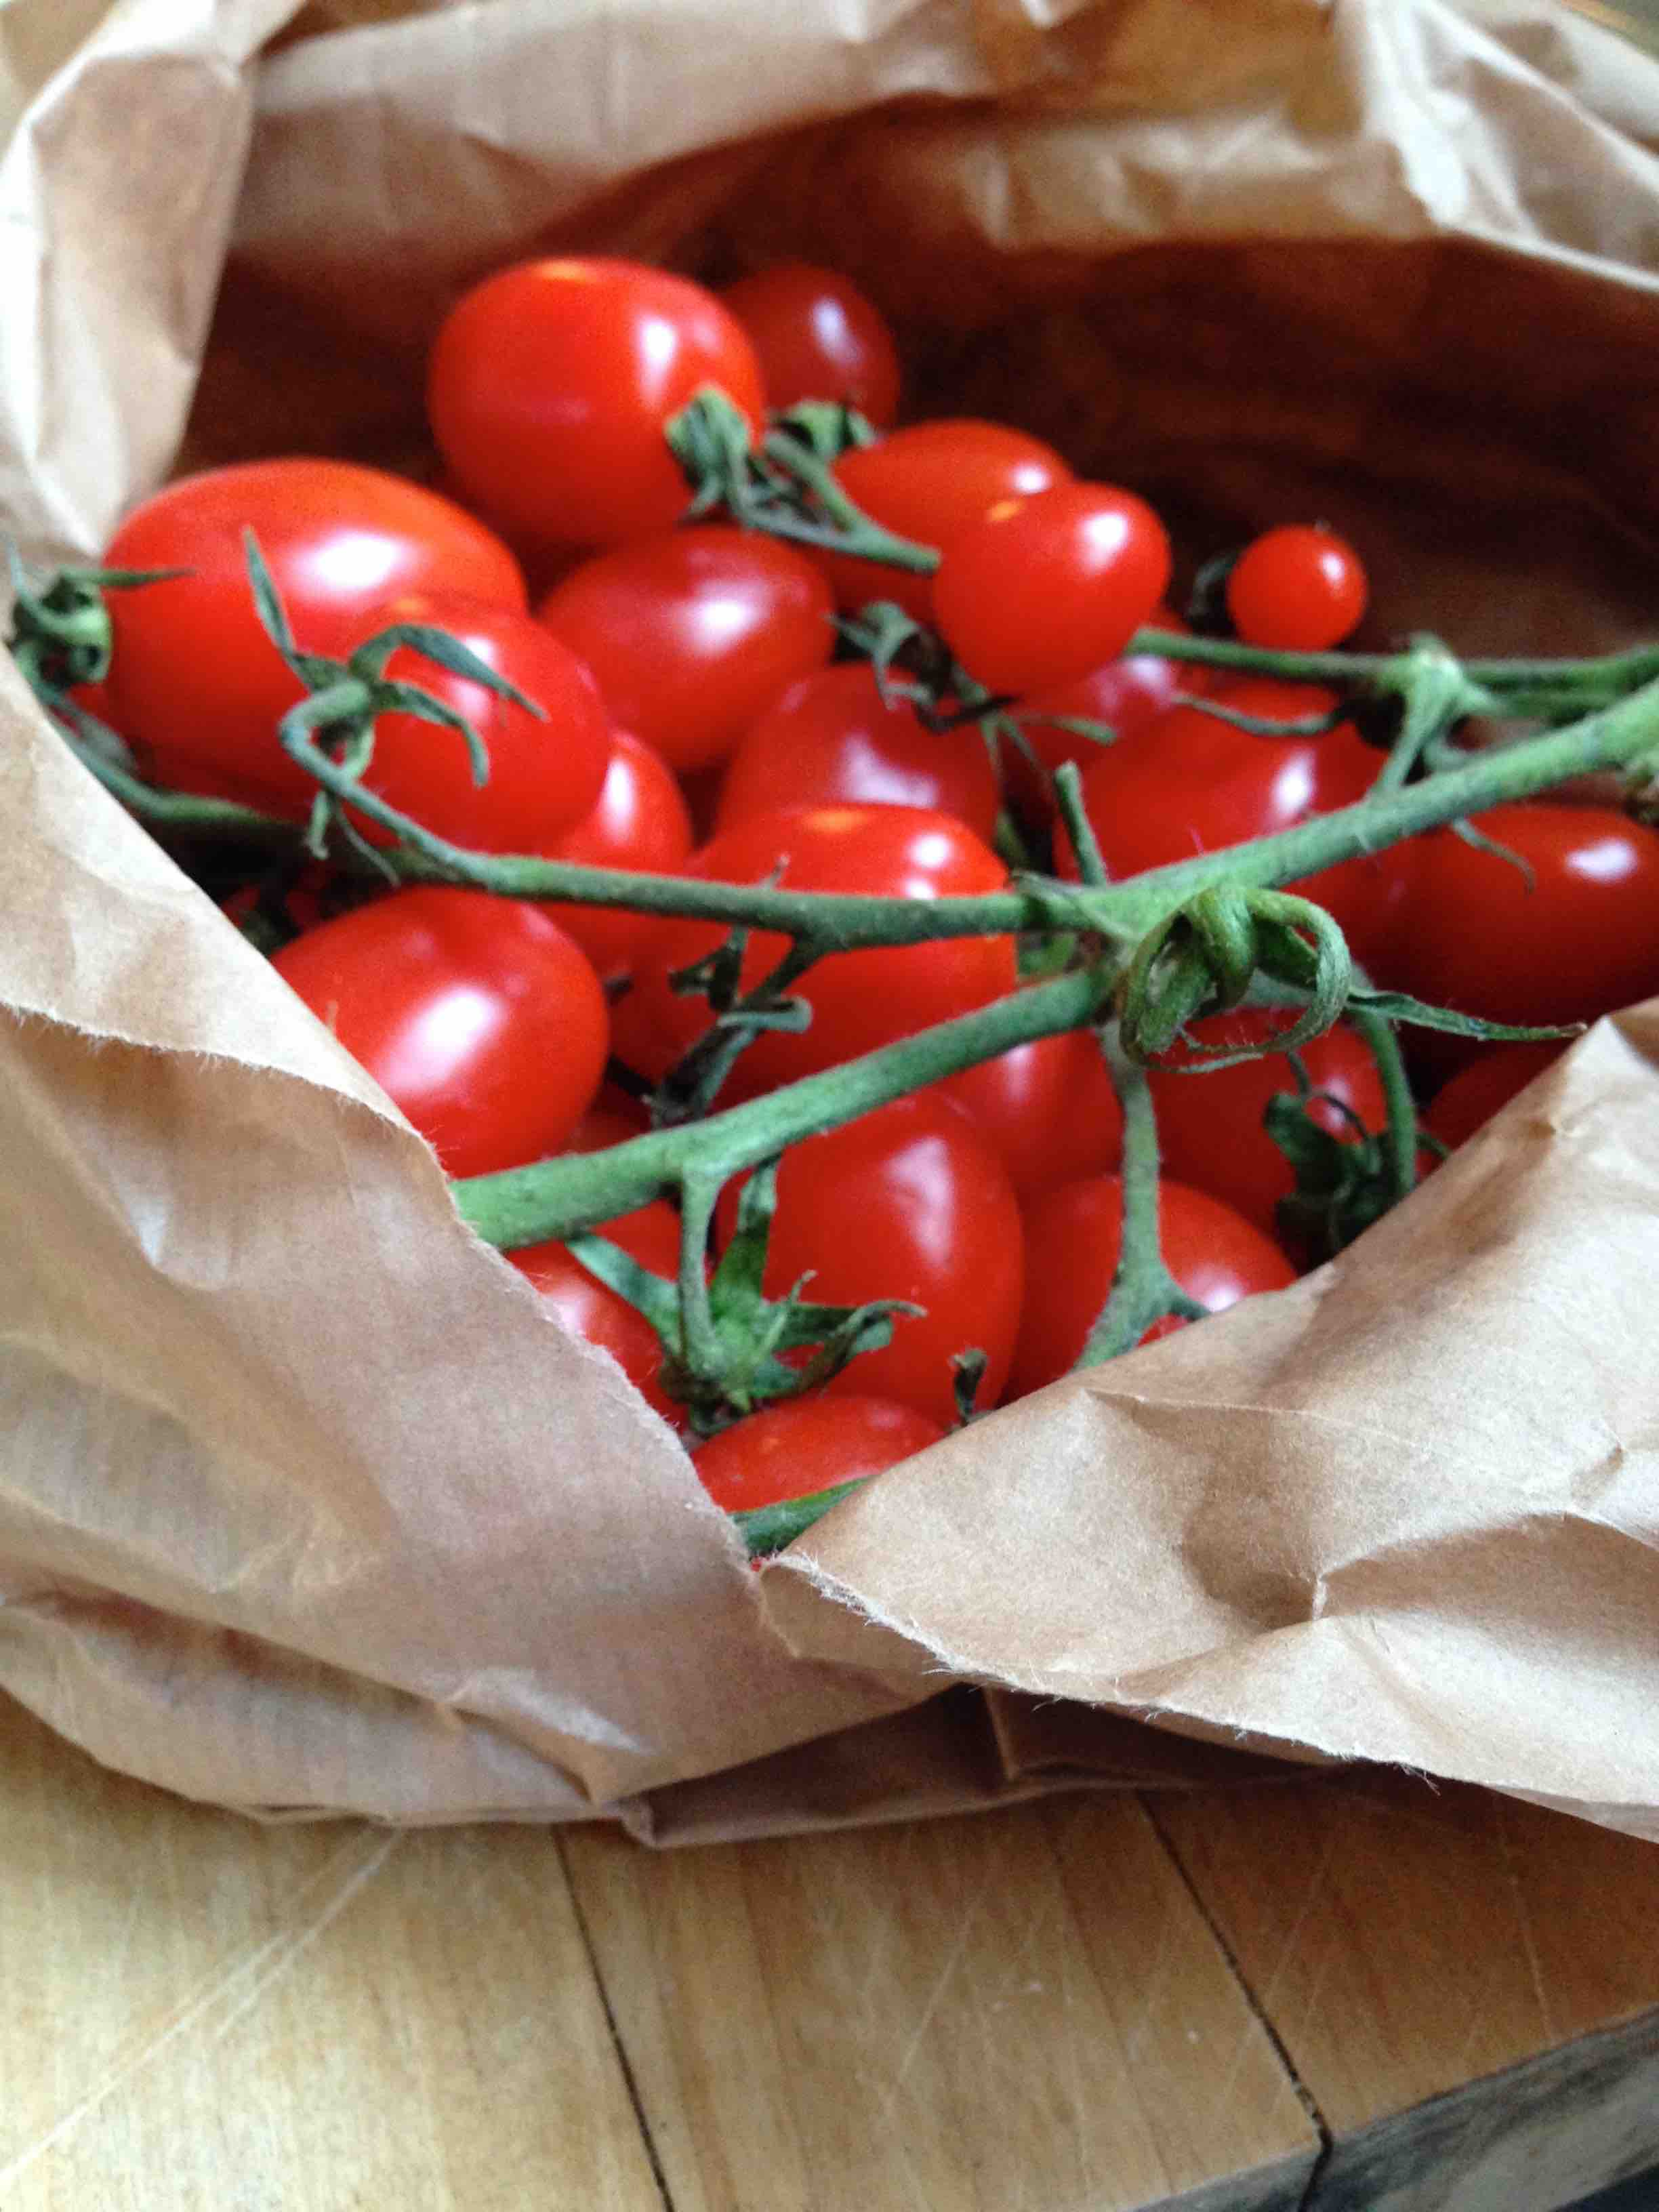 tomatoes to caramelize for a cookingclass in florence